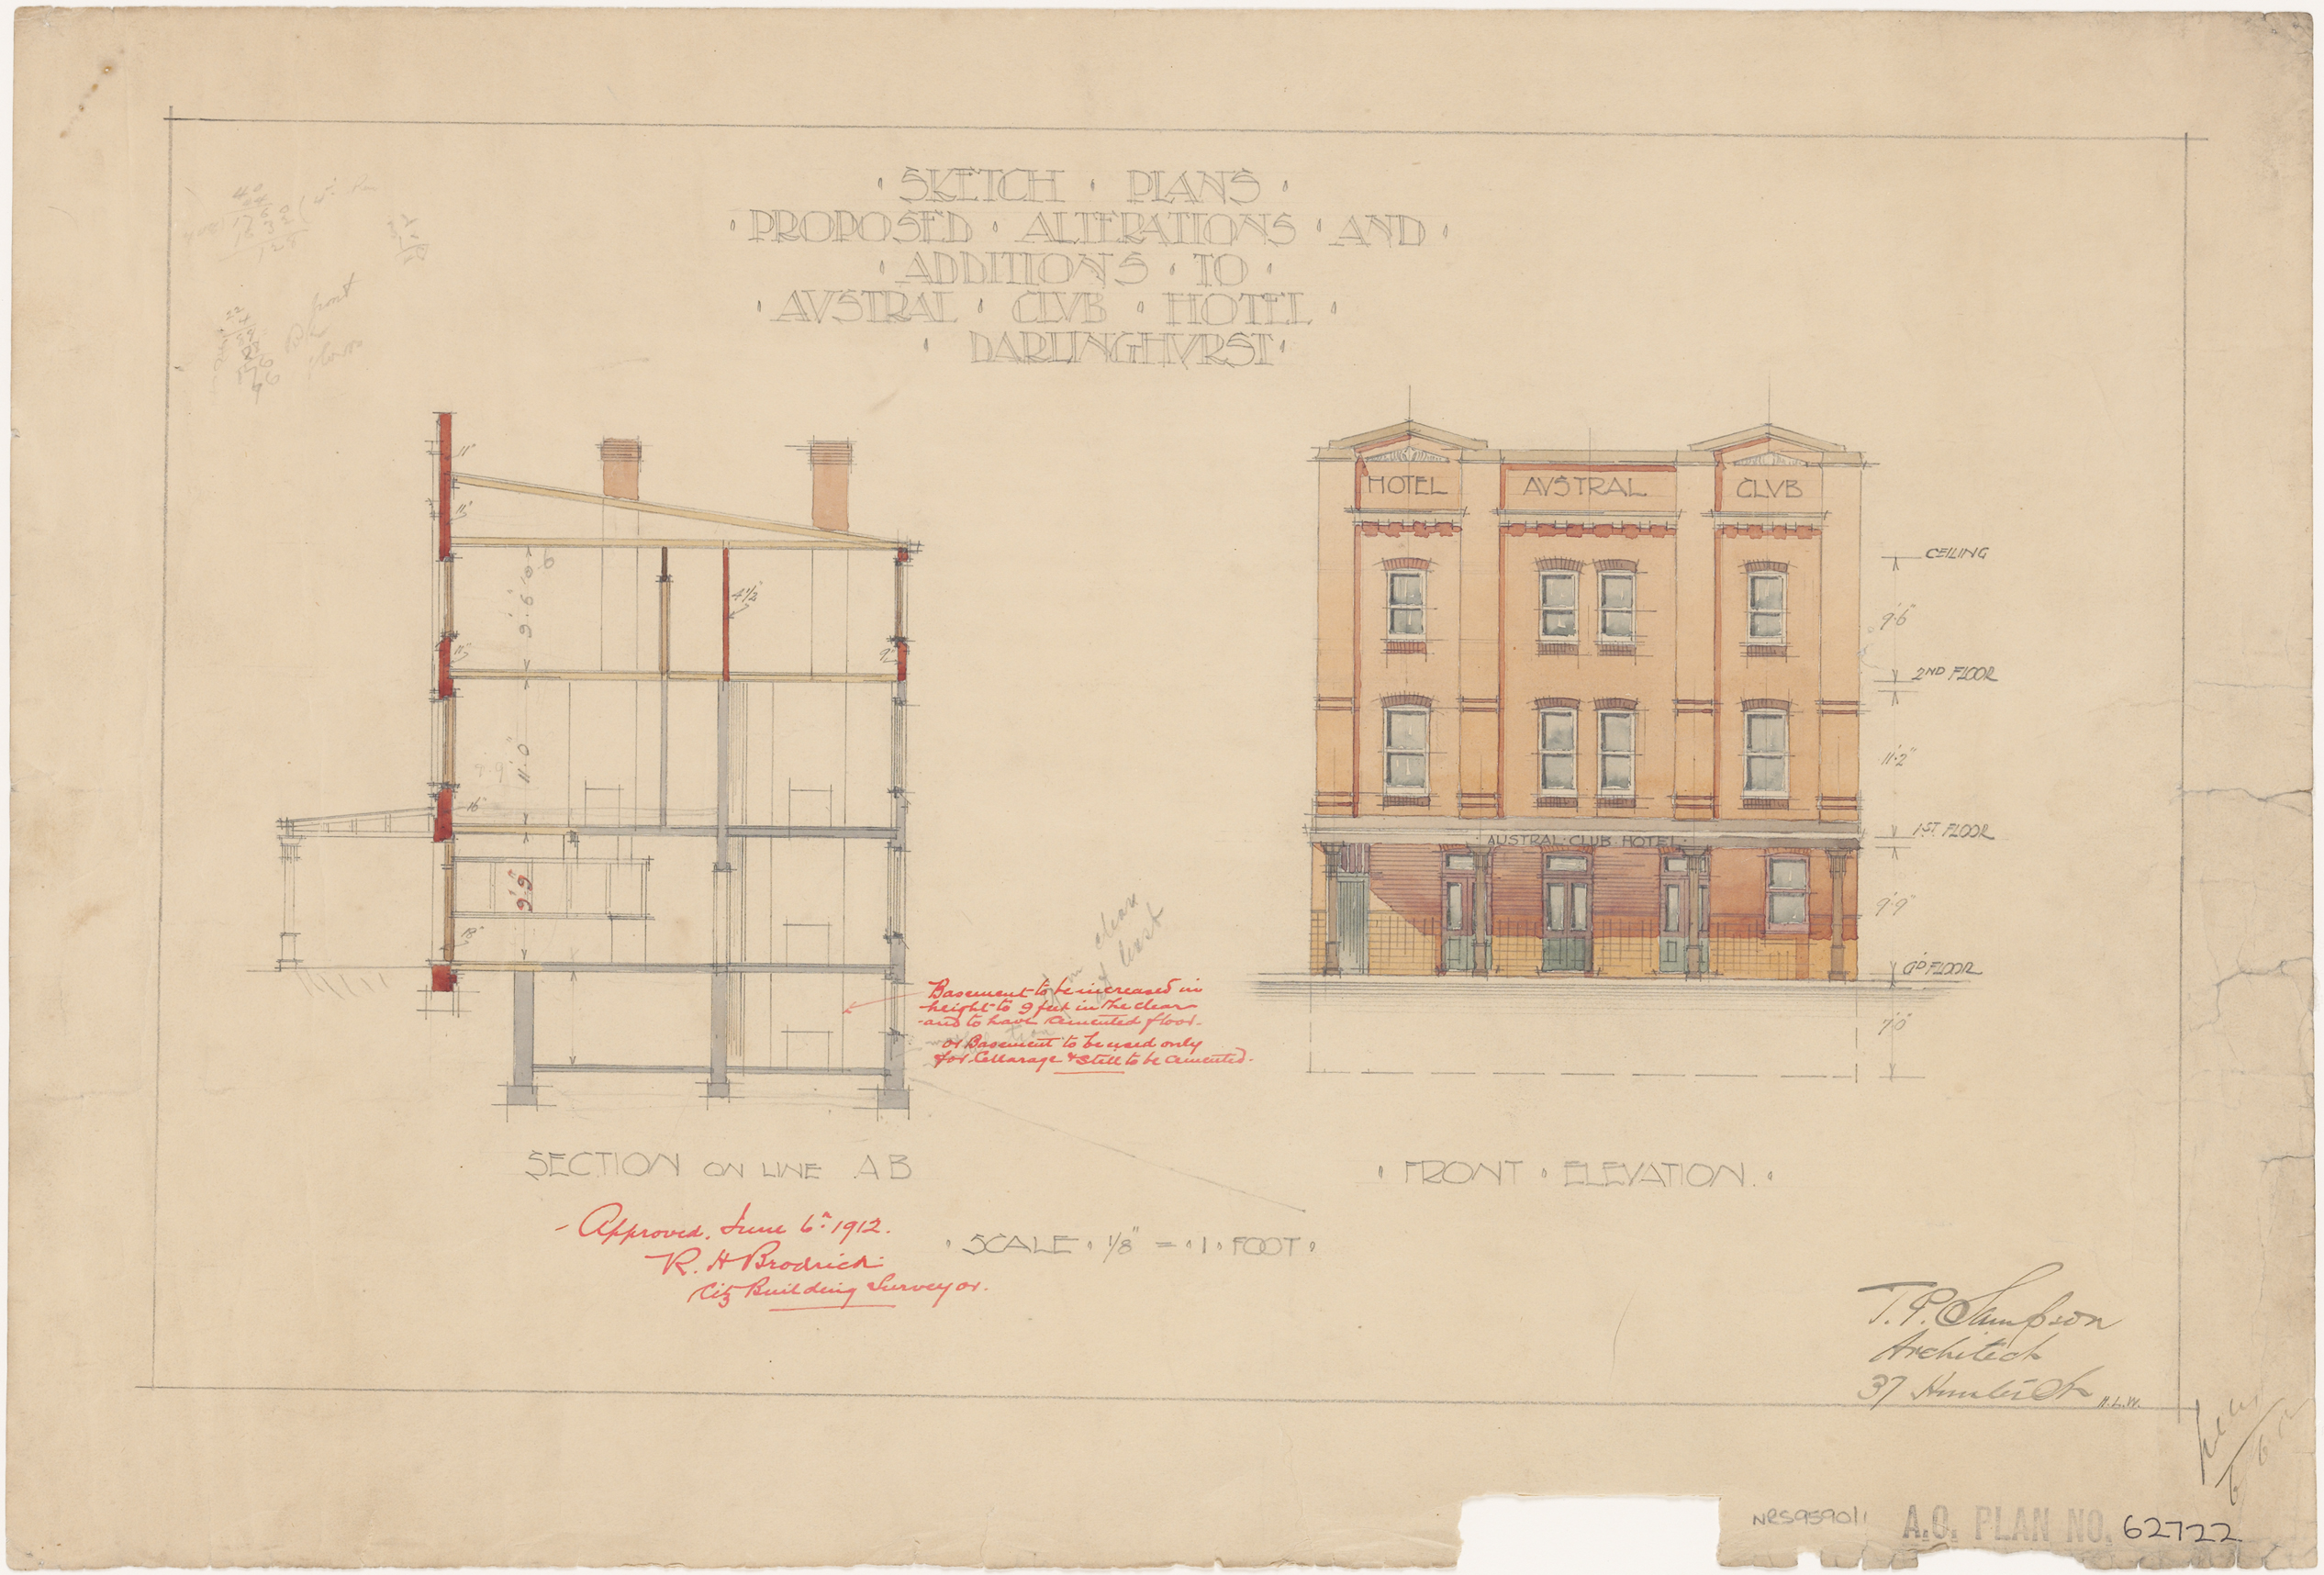 Austral Club Hotel, Darlinghurst, Proposed alterations and additions, front elevation section, Architect T P Sampson, 37 Hunter Street, Signed 6 June 1912